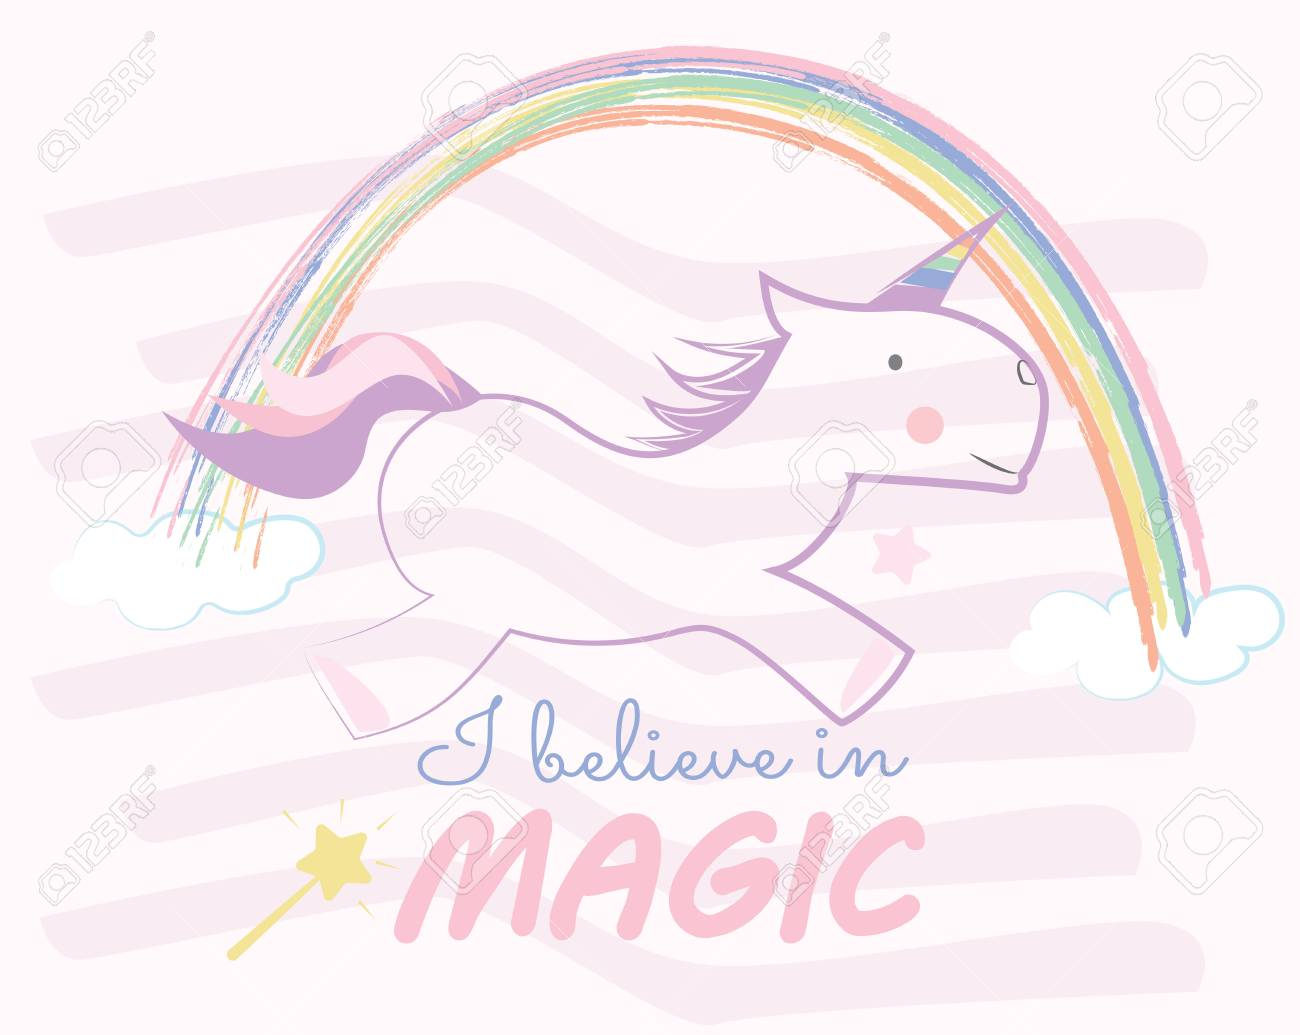 Unicorn Children Style Drawings Cute Baby Horse And Rainbow Royalty Free Cliparts Vectors And Stock Illustration Image 70957829